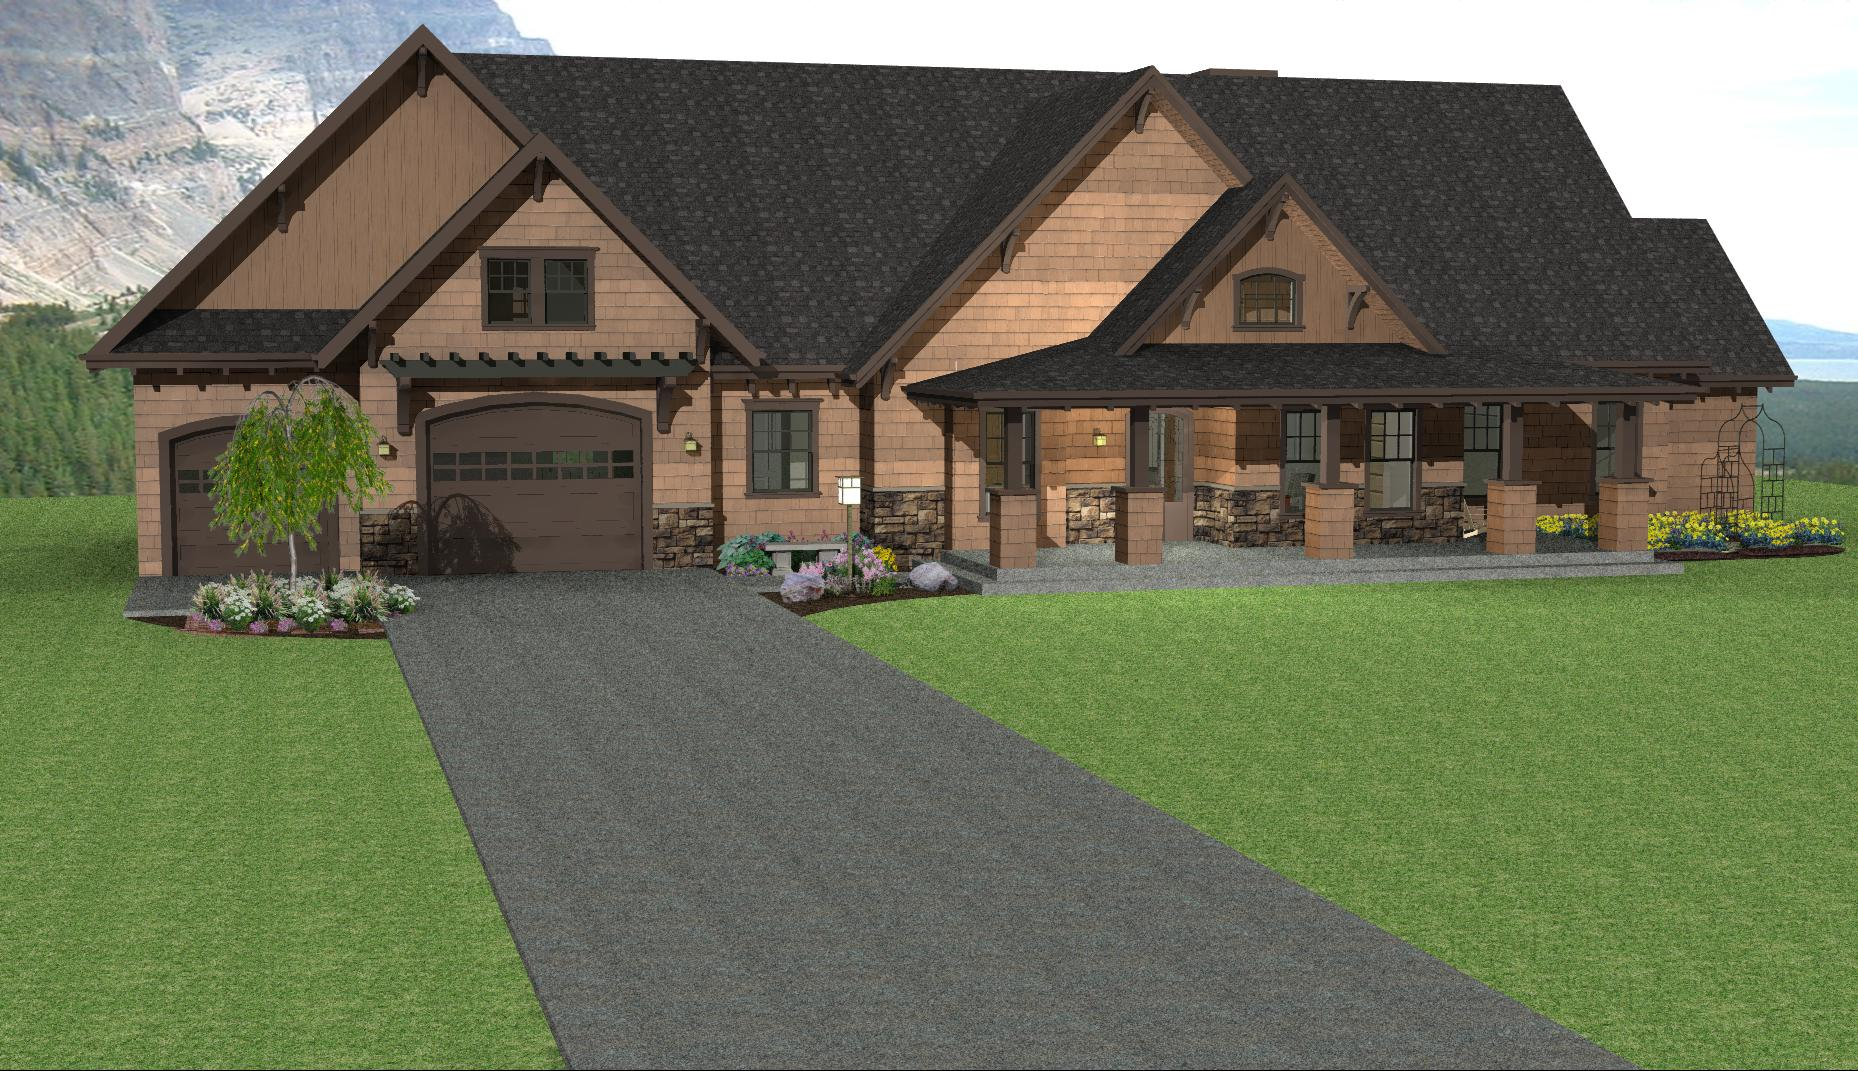 Ranch style home designs find house plans for Ranch home house plans